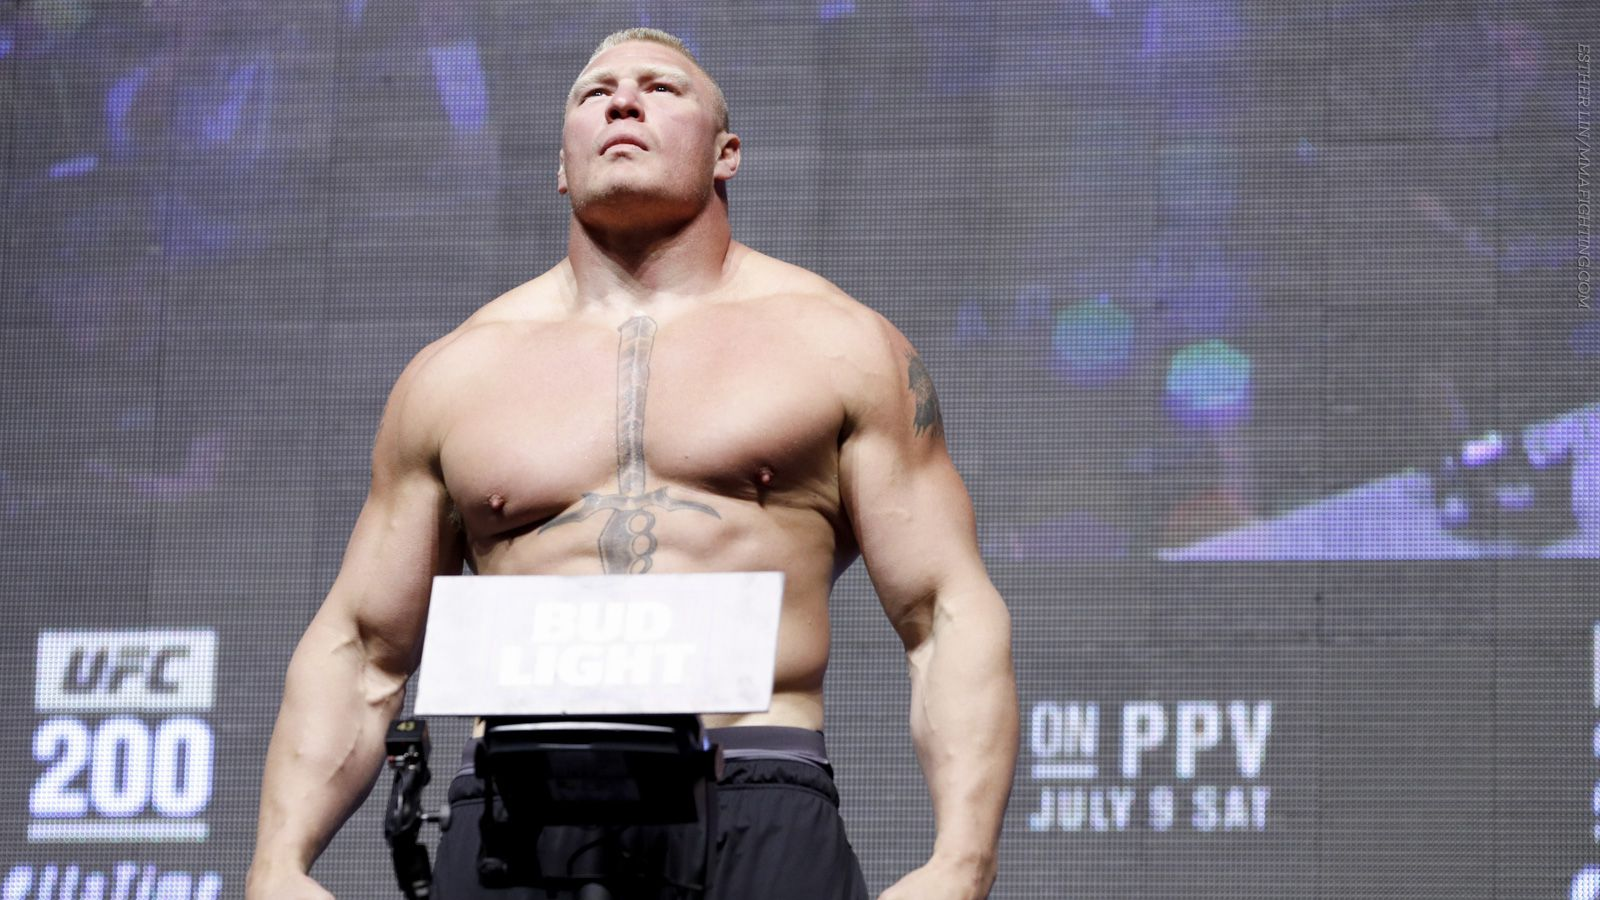 Manager: Fans never saw Brock Lesnar at his absolute physical peak in UFC